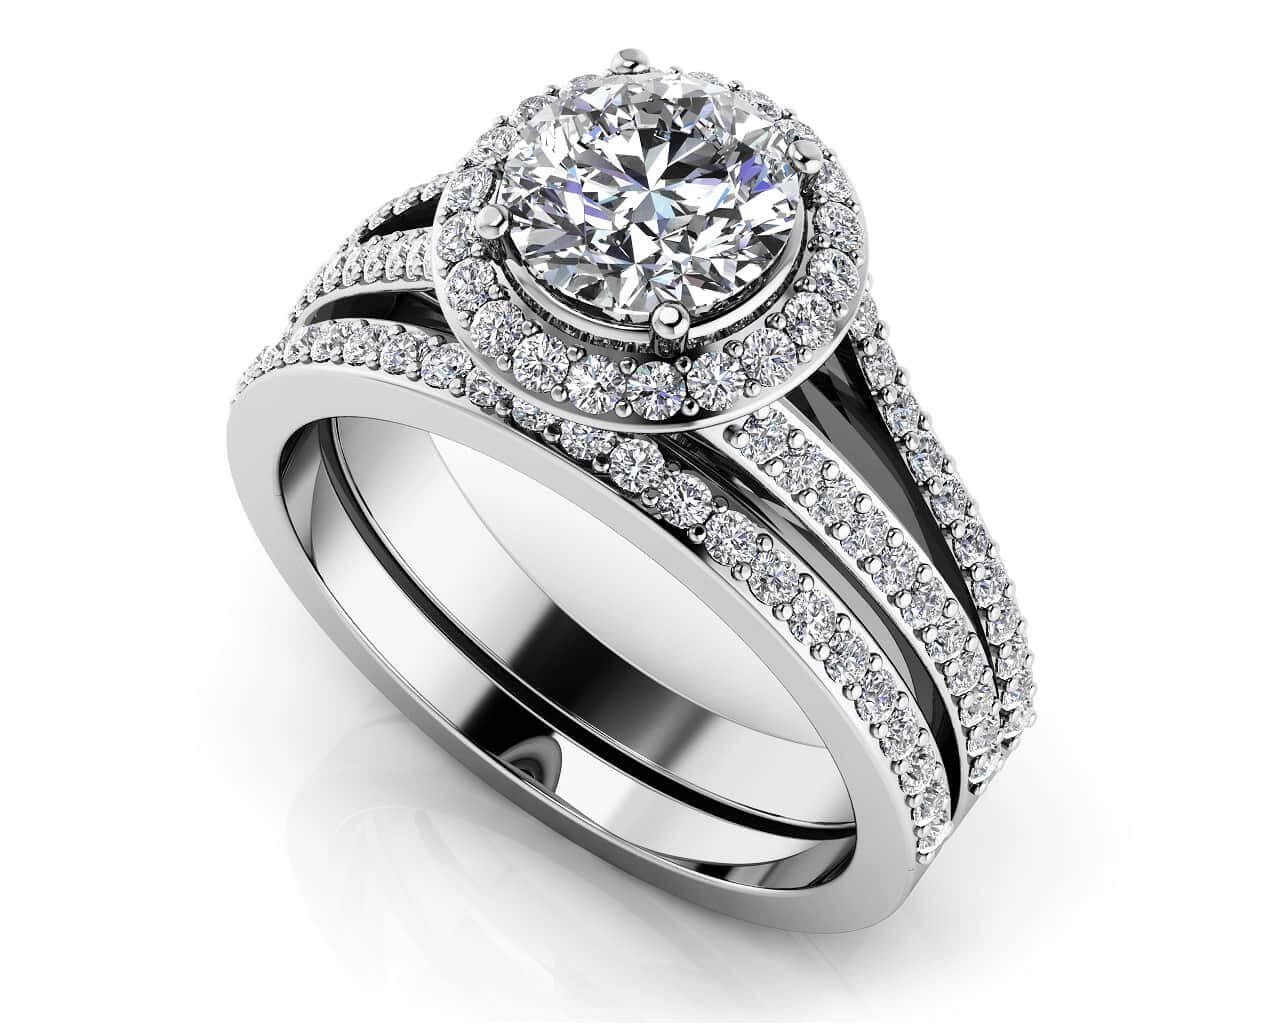 customize your wedding set matching diamond bridal set - Bridal Set Wedding Rings